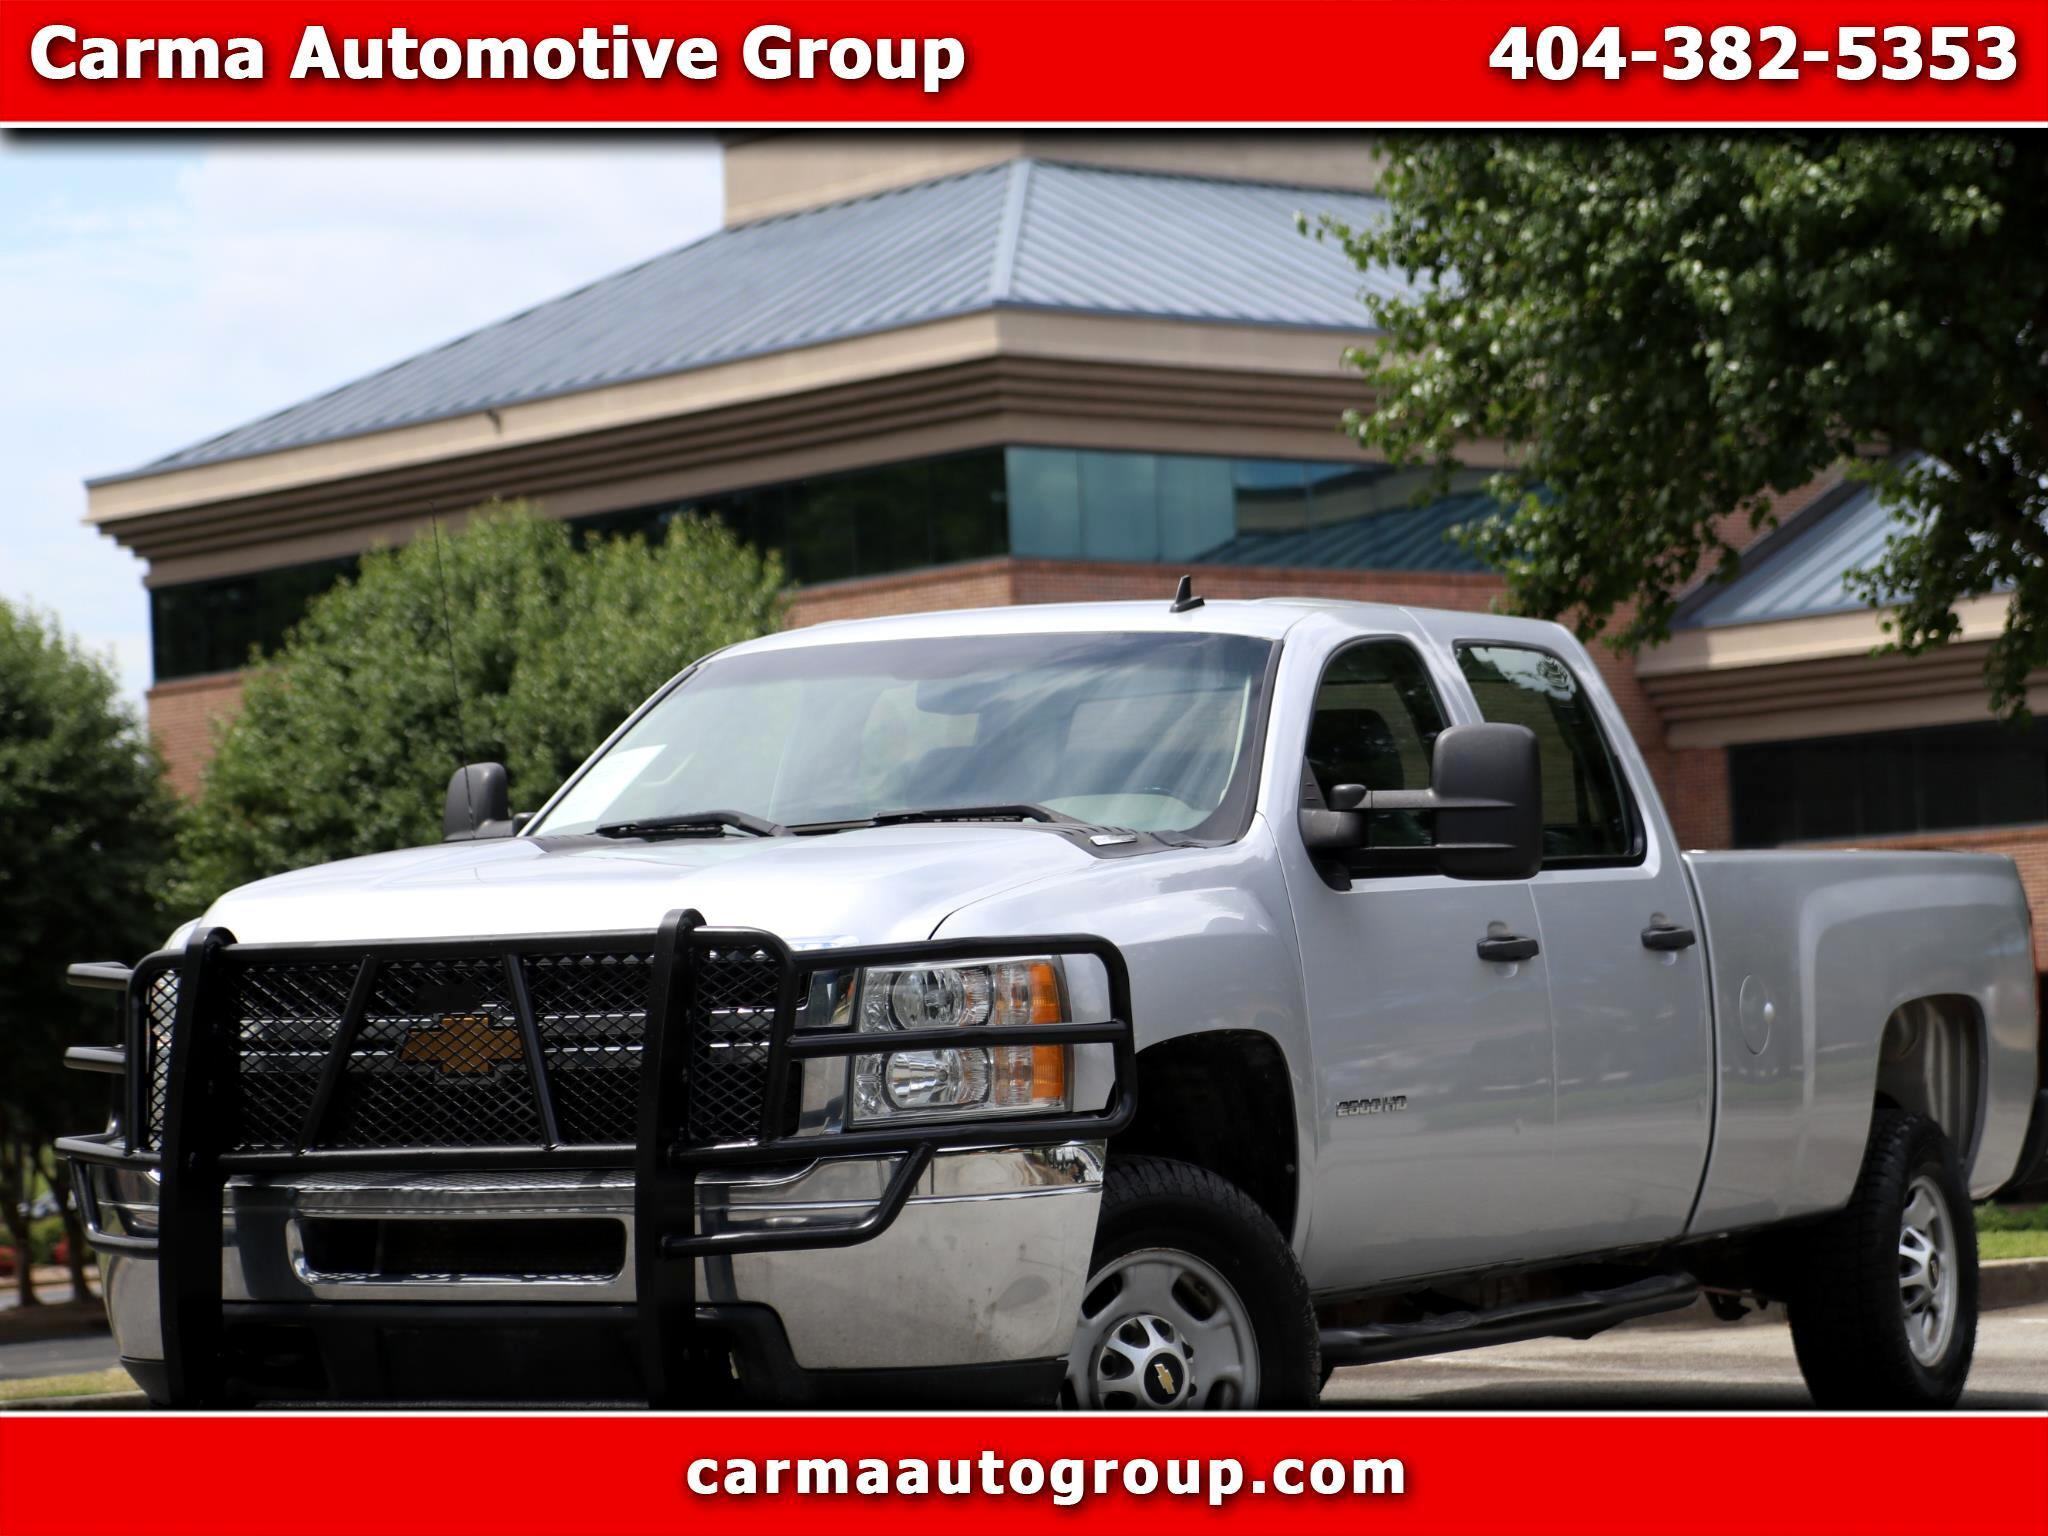 Chevrolet Silverado 2500HD LS Crew Cab Long Bed 4WD 2013